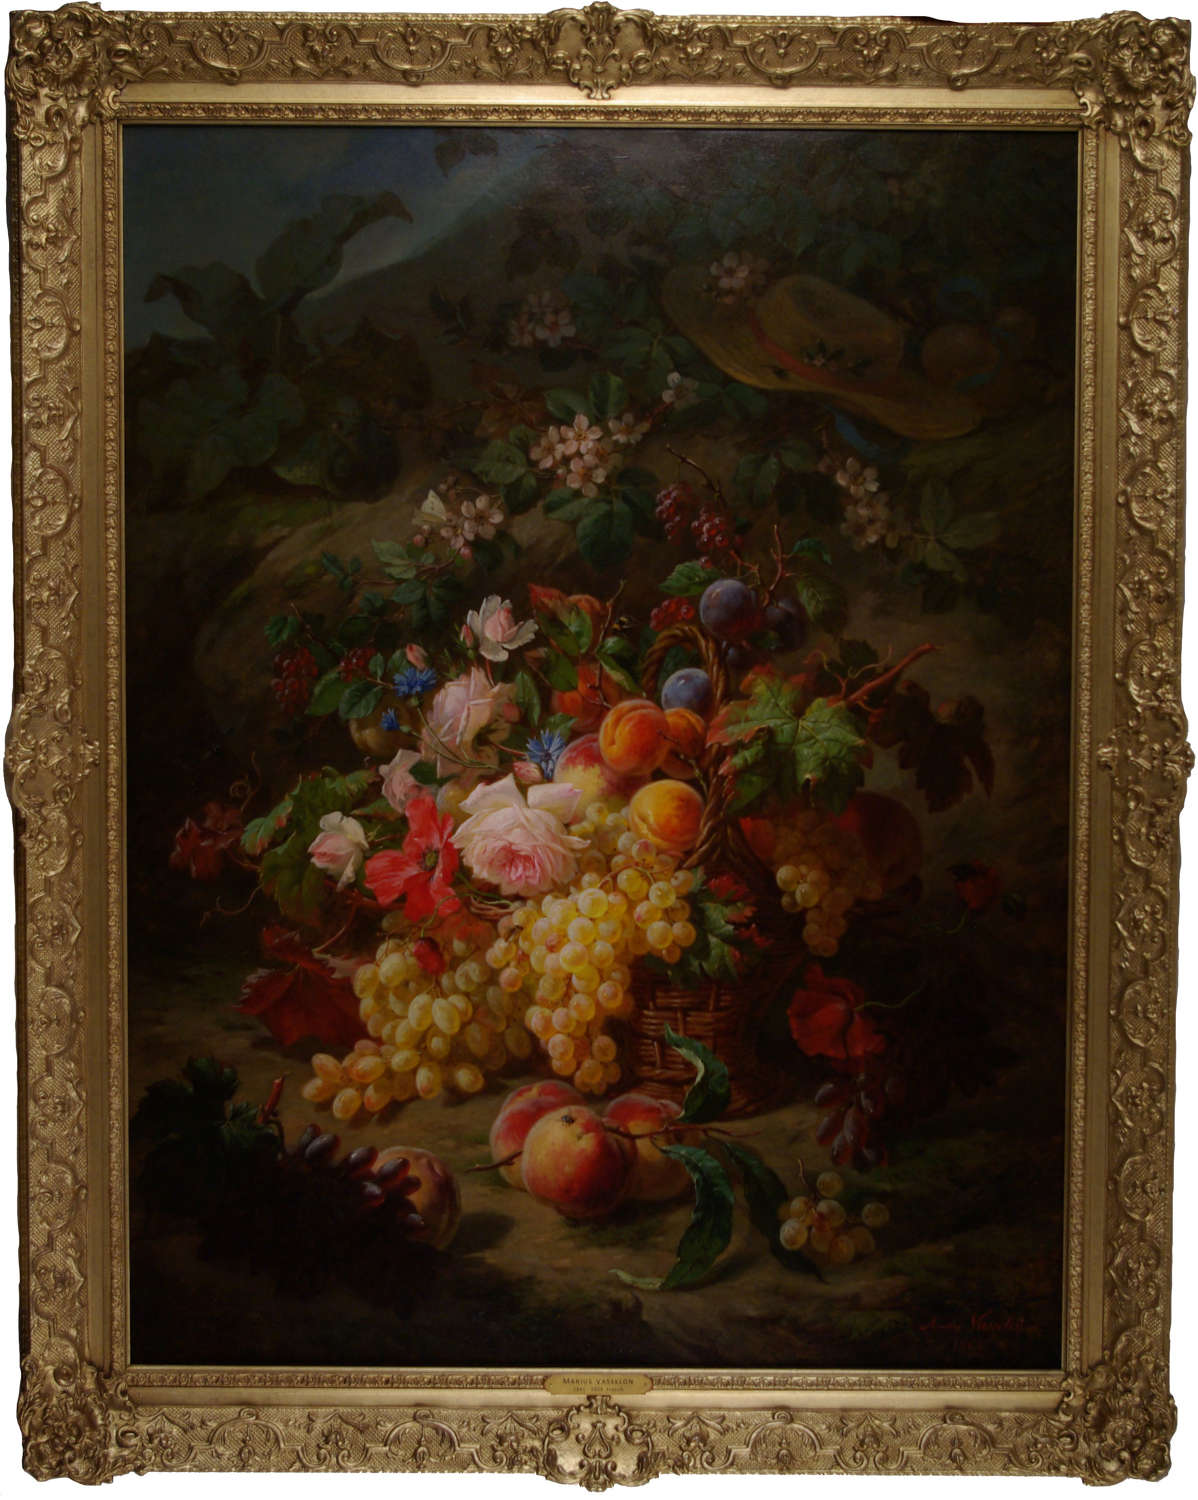 A STILL LIFE OF FRUITS AND FLOWERS ON A MOSSY BANK ~ MARIUS VASSELON